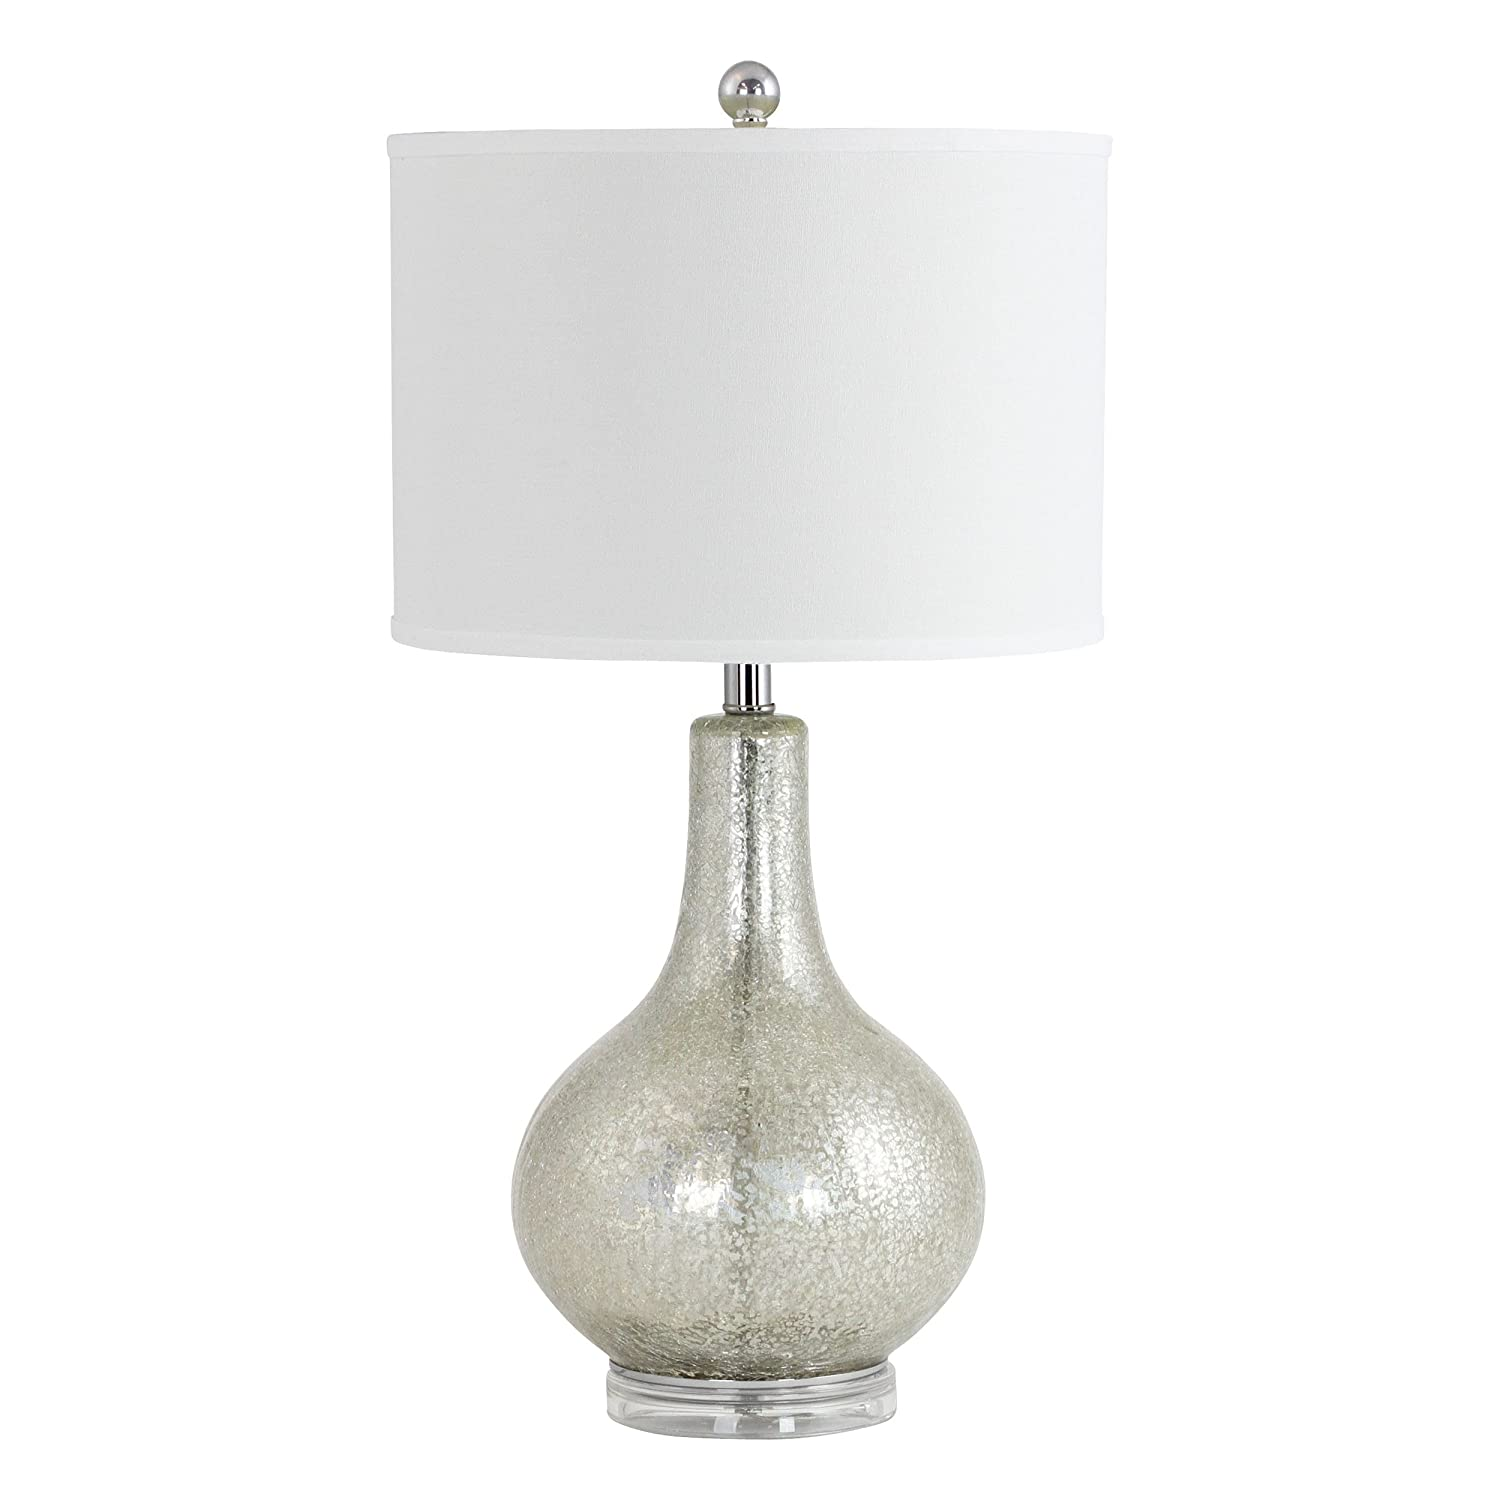 Amazon Com Aspire Caressa Antique Mercury Glass Table Lamp Silver